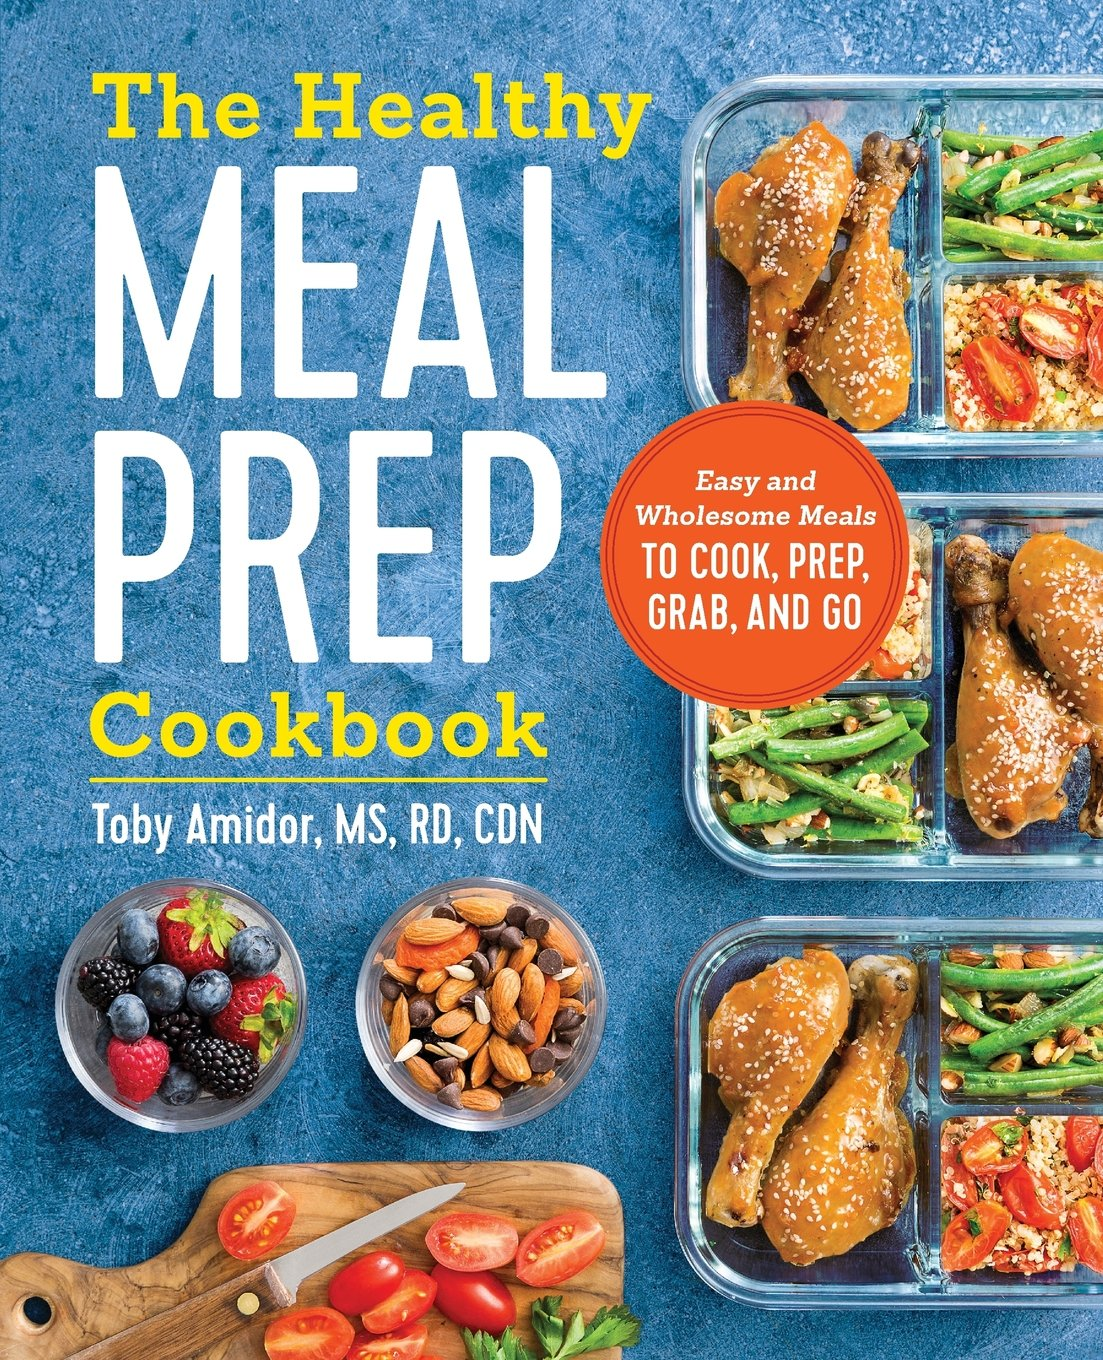 Amazon.com: The Healthy Meal Prep Cookbook: Easy and Wholesome Meals to  Cook, Prep, Grab, and Go (9781623159443): Toby Amidor: Books